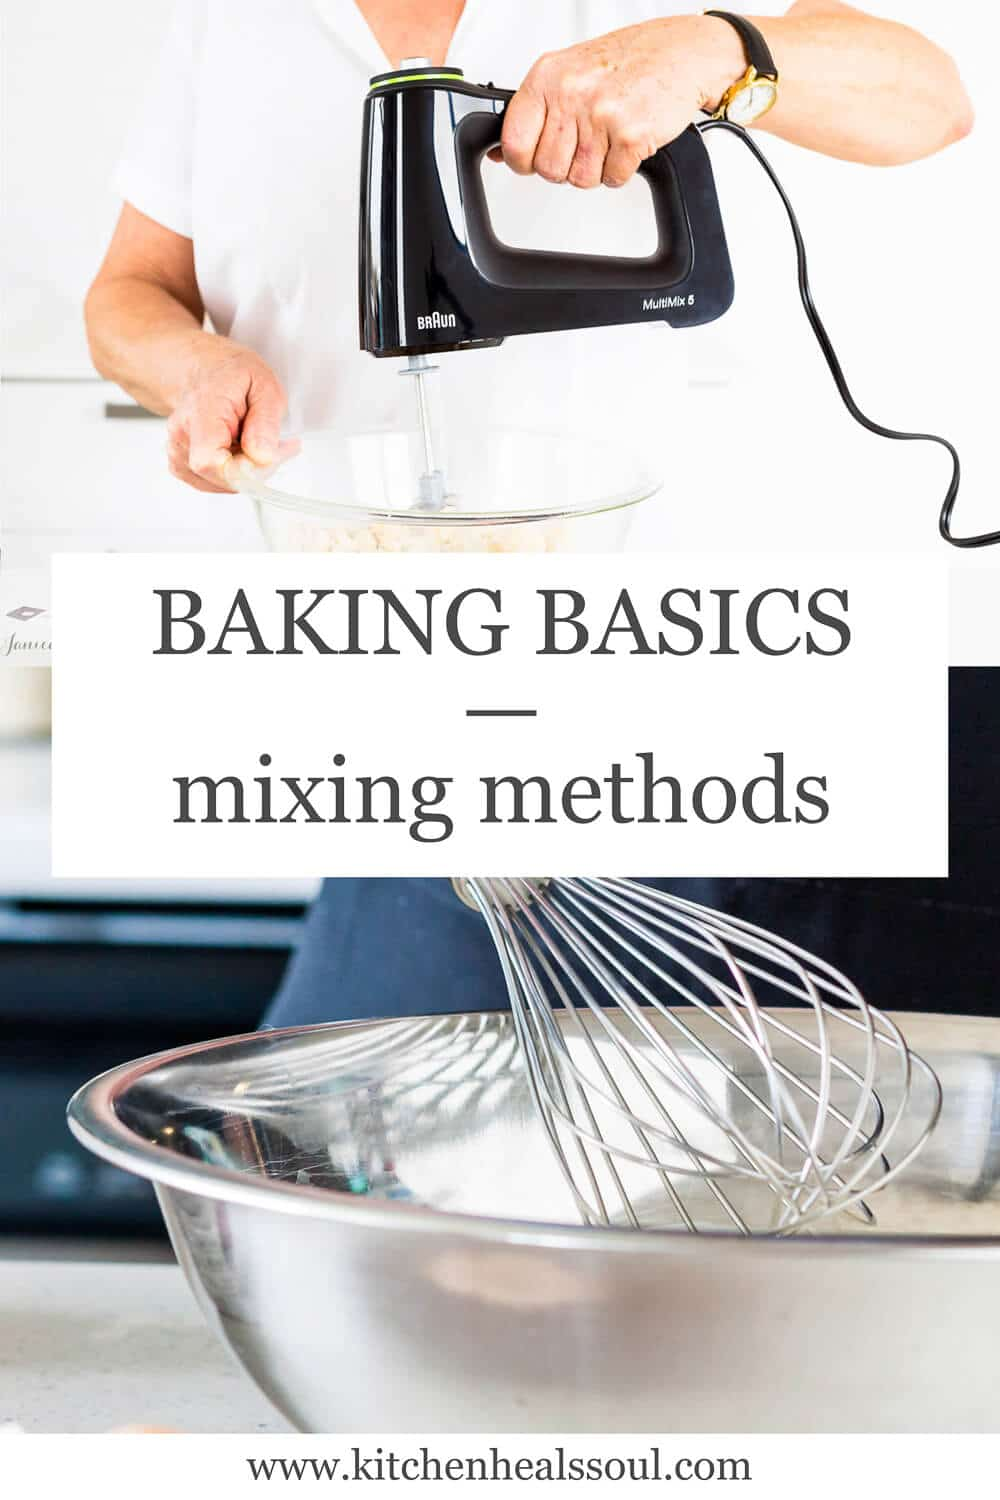 Baking basics: mixing methods featuring a photo mixing cake batter using electric mixer and a photo of whisking ingredients by hand